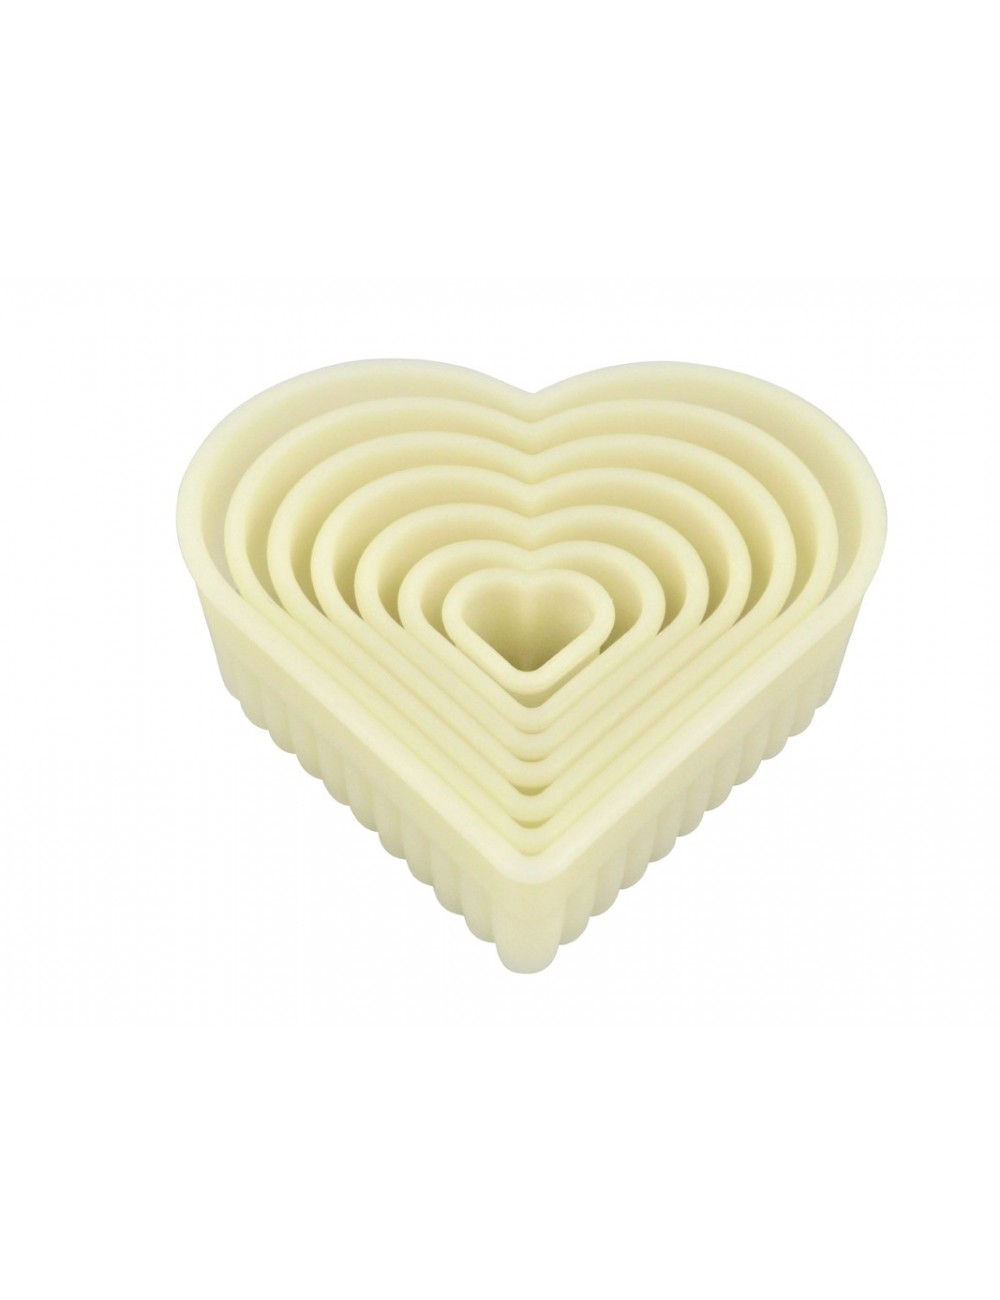 BOX OF 7 FLUTED HEART-SHAPED CUTTERS - POLYGLASS